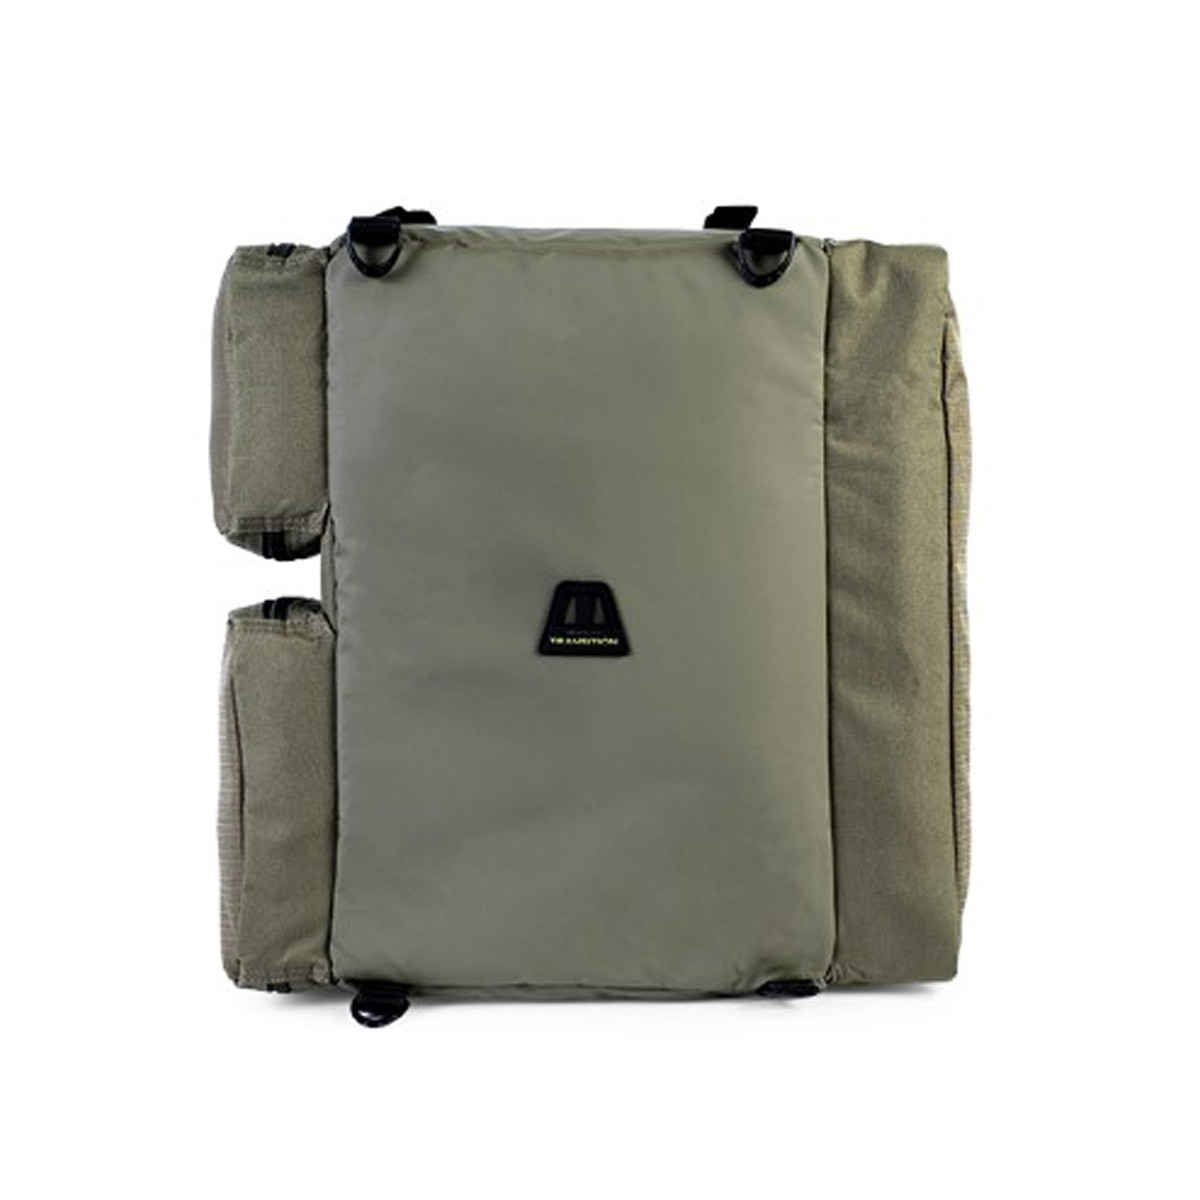 Korum Transition Compact Ruckbag